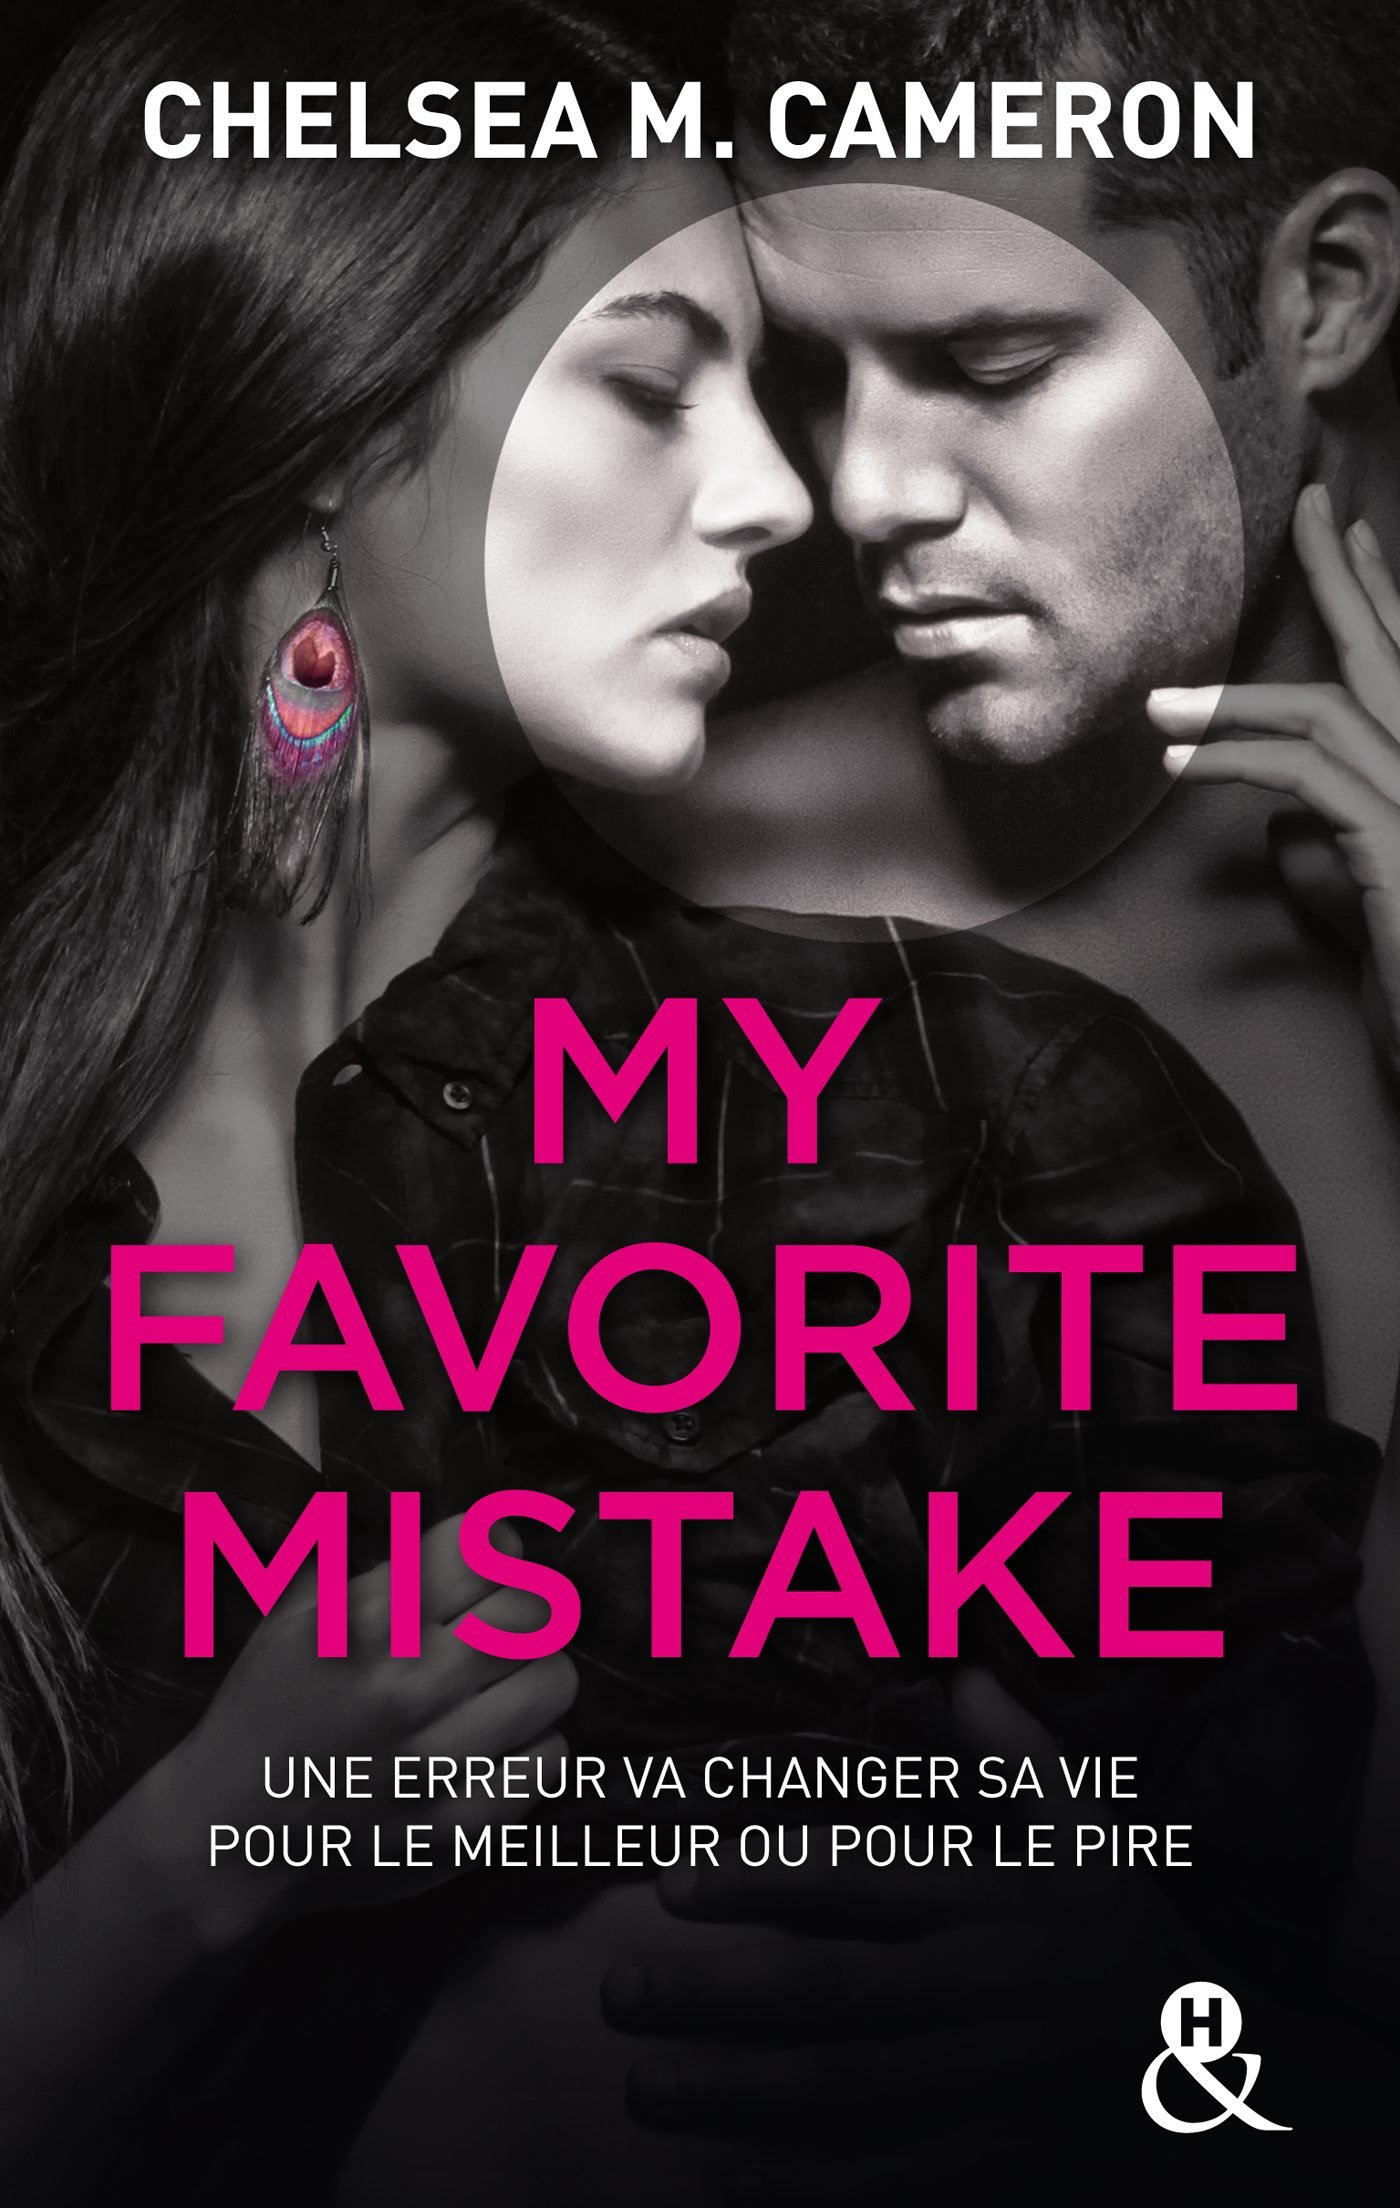 Couverture : CHELSEA M. CAMERON, MY FAVORITE MISTAKE, Harlequin